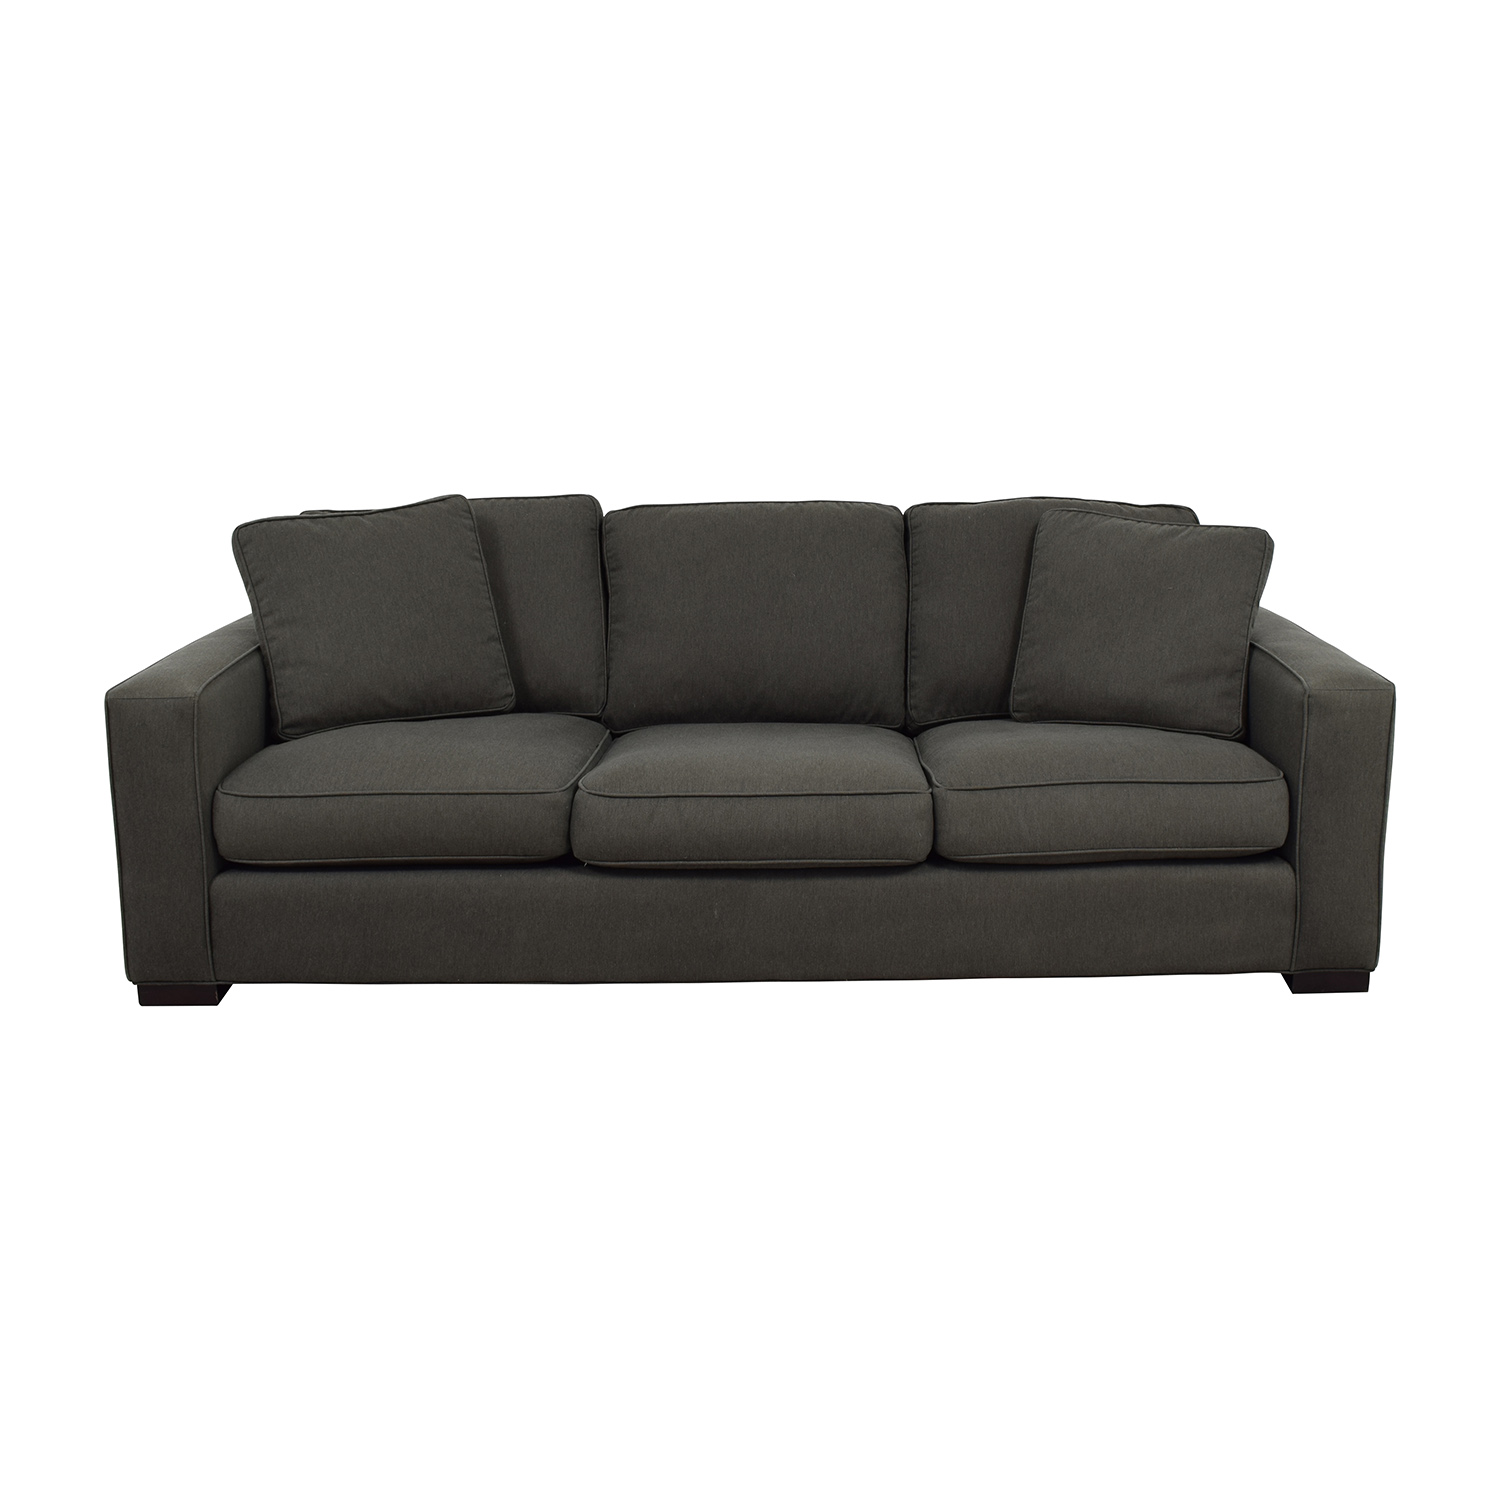 room and board metro sleeper sofa plastic arm covers for sofas buy quality second hand furniture